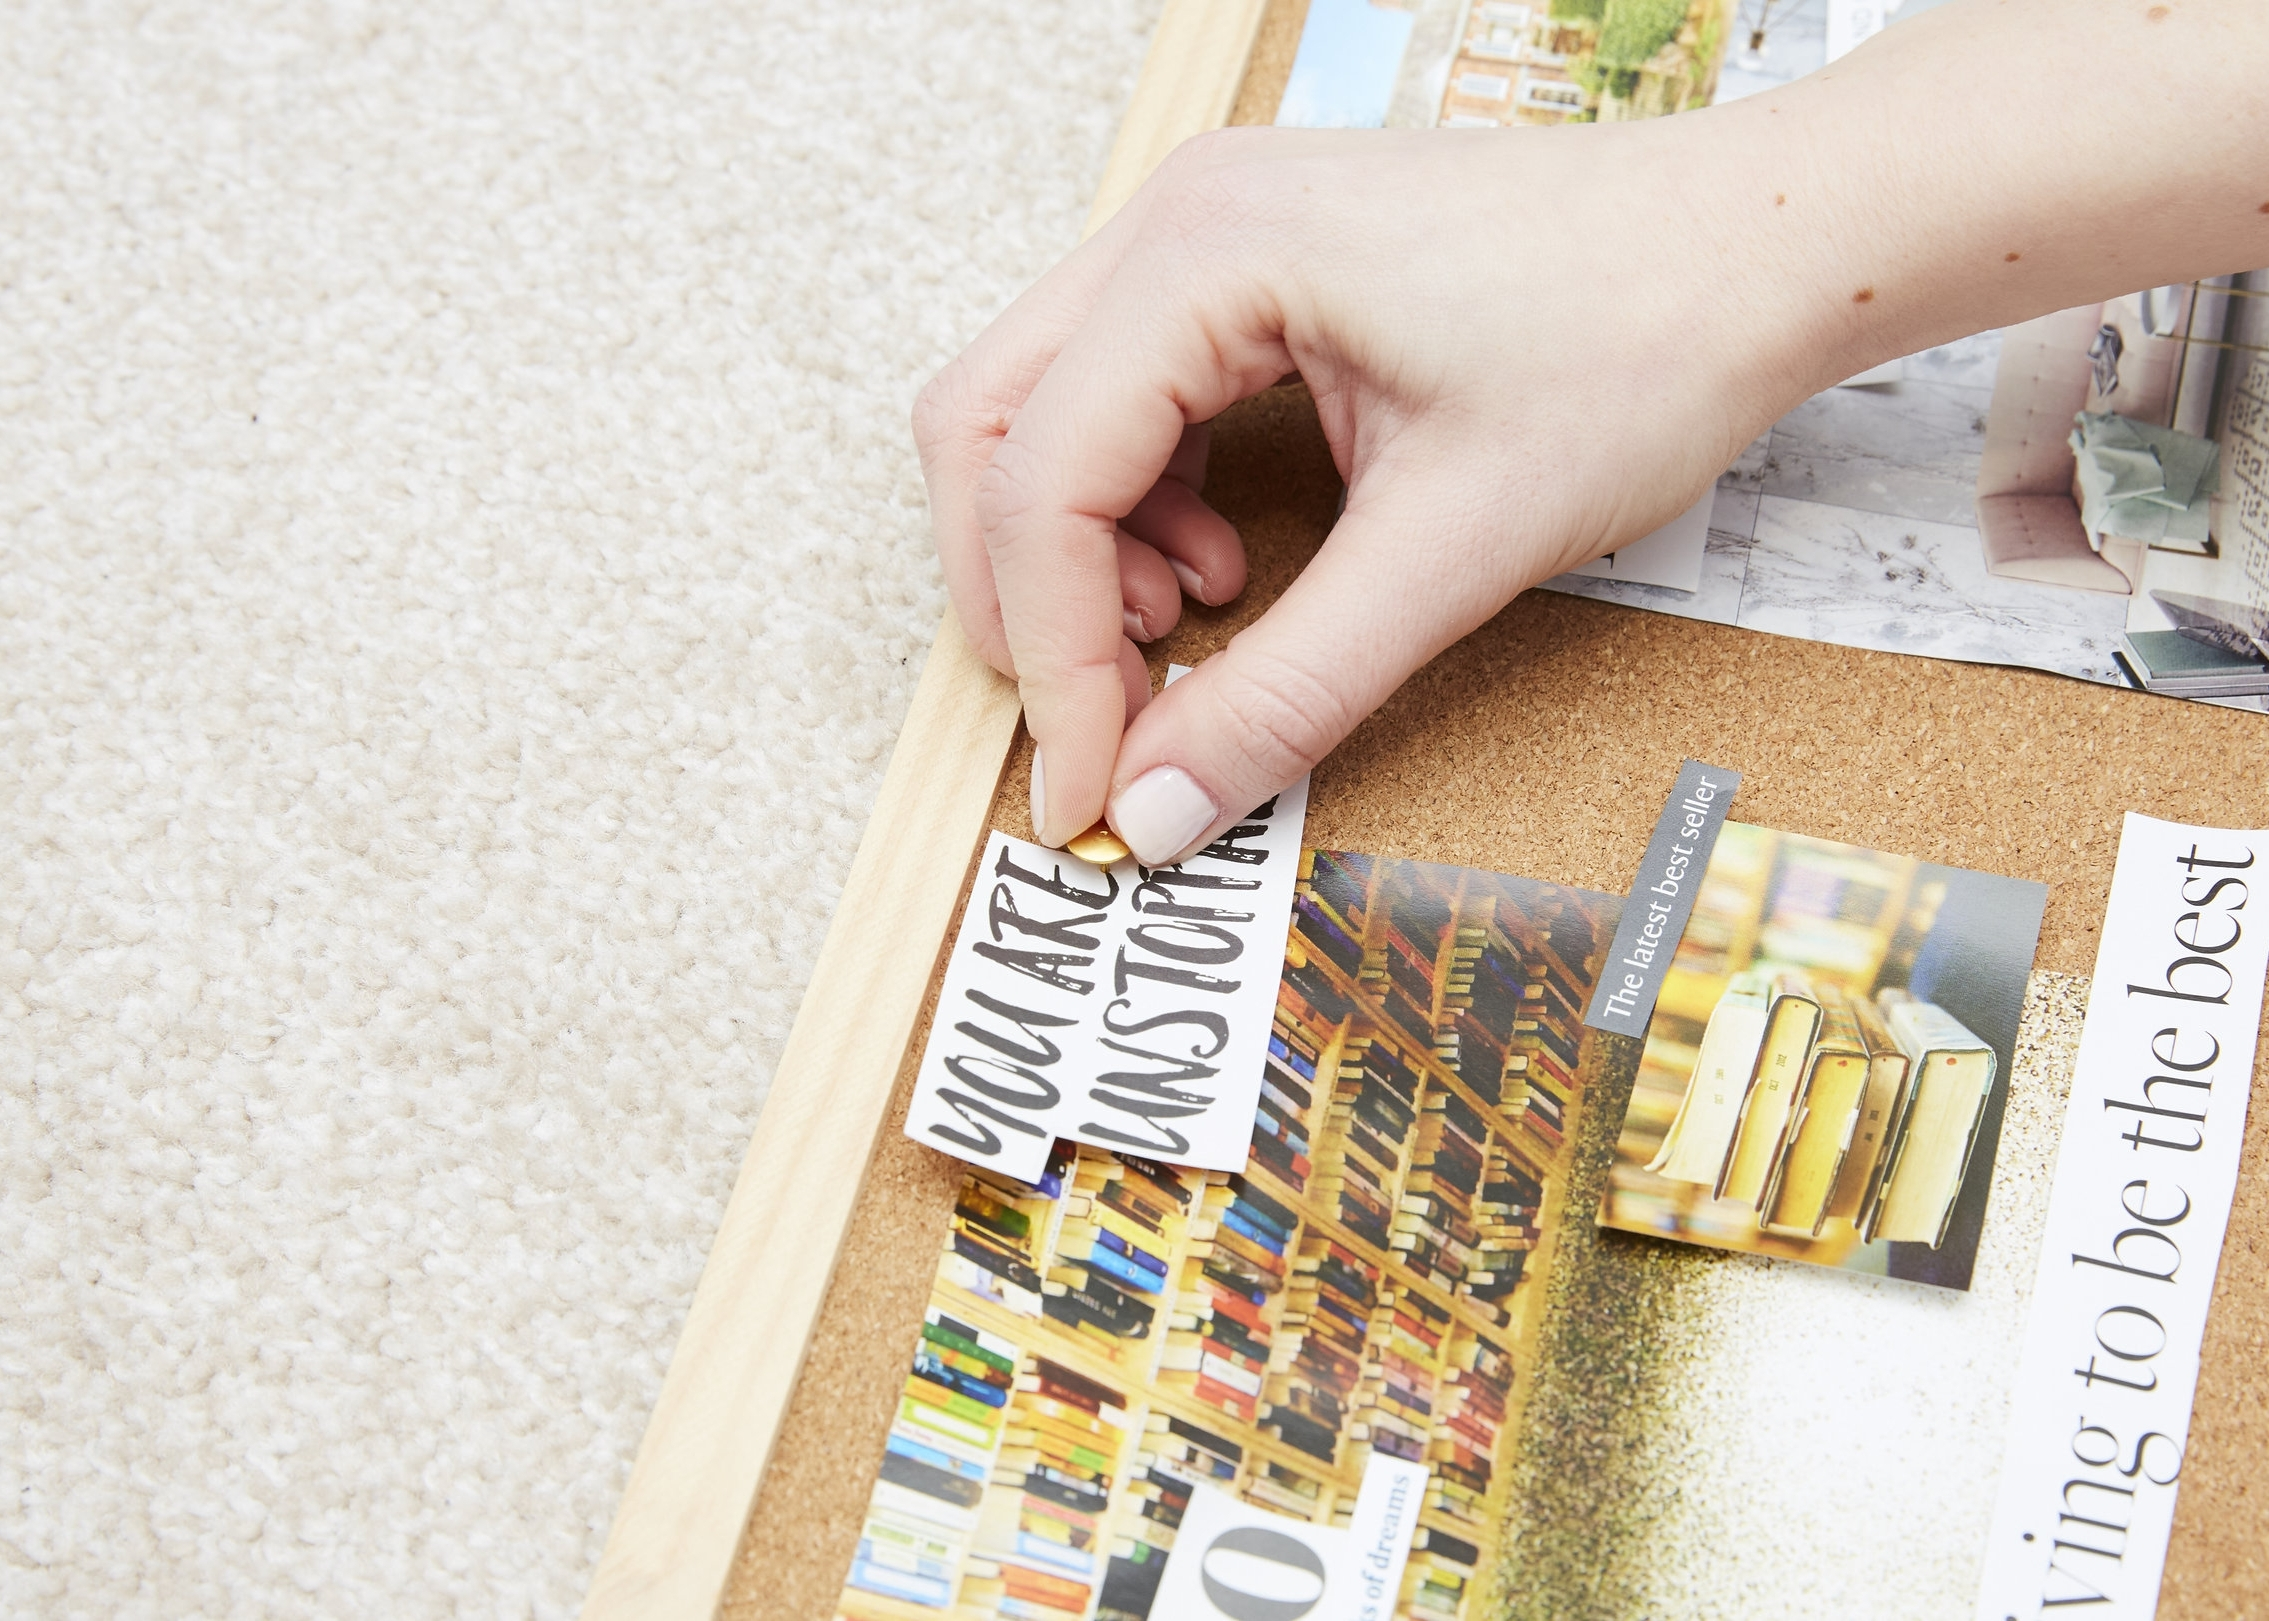 the-vision-board-project-images-examples-tutorial-guide.jpg